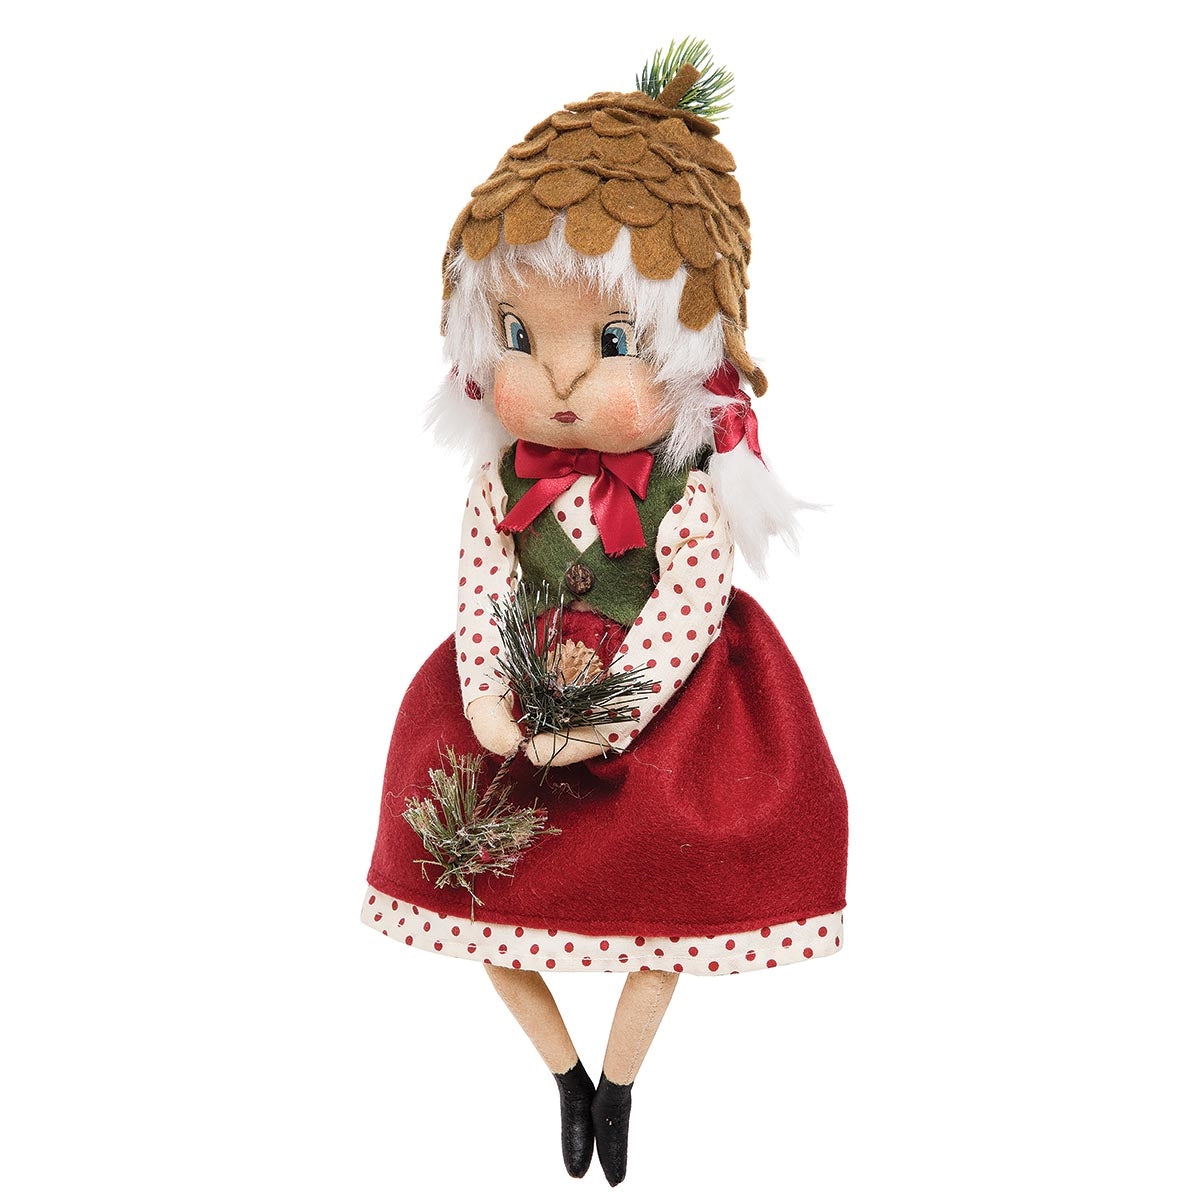 Heather Pinecone Doll by Joe Spencer 2019